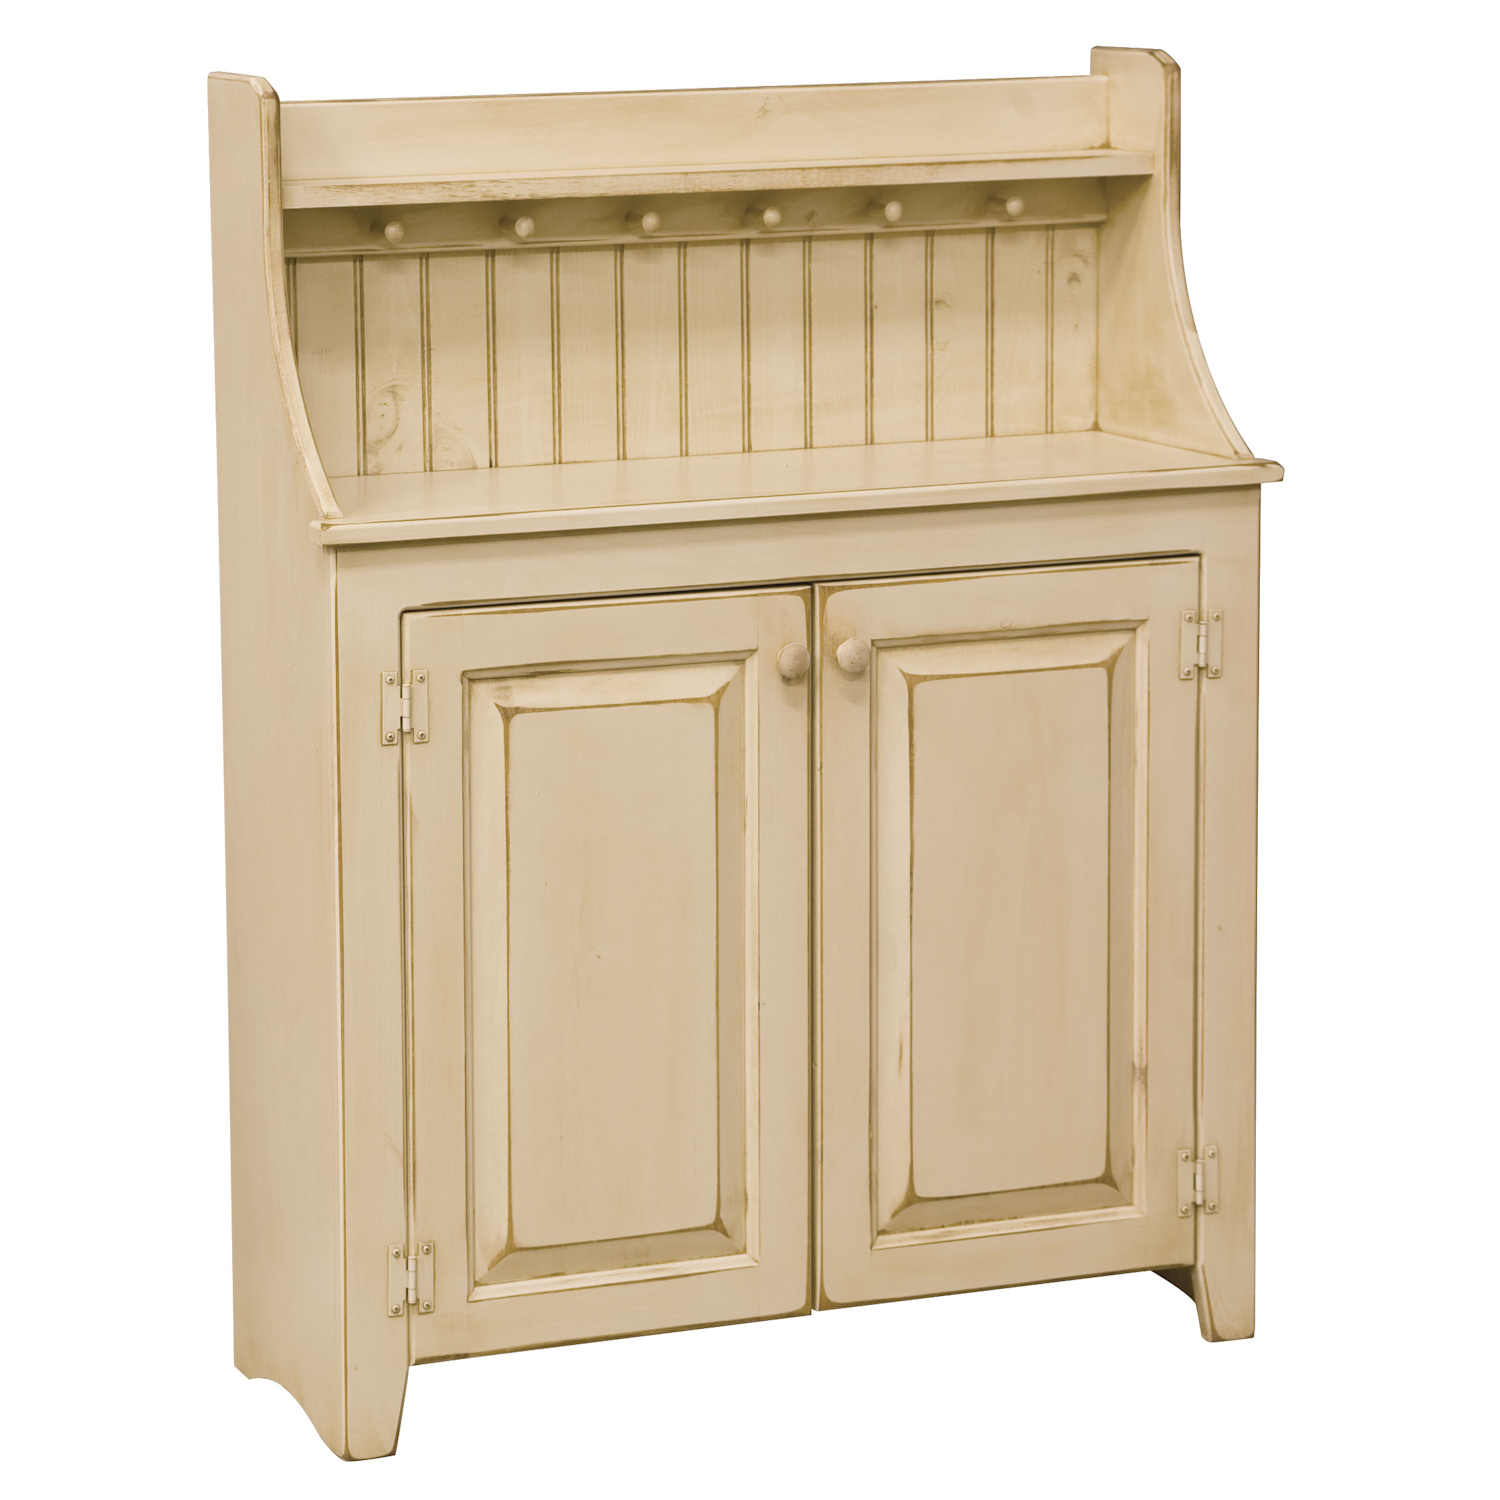 210 Large Dry Sink